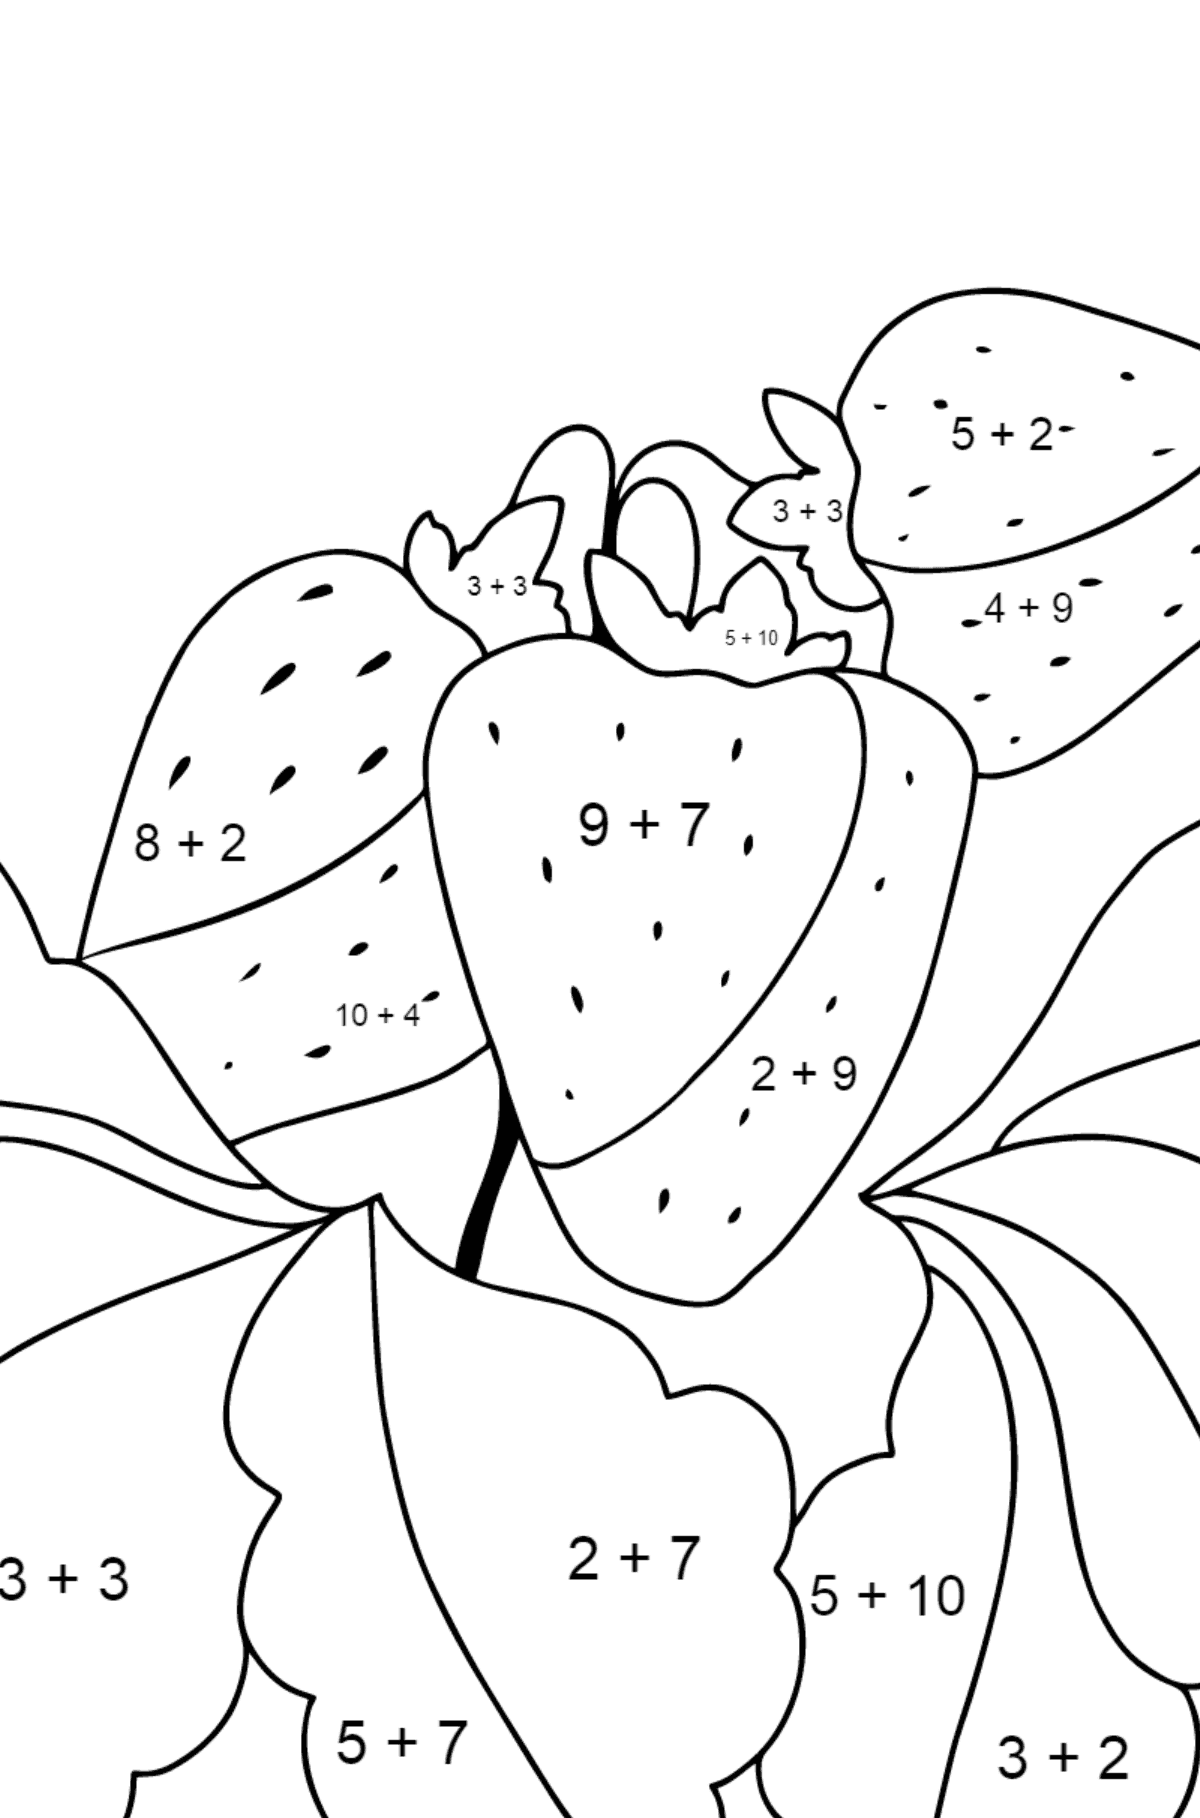 Summer Coloring Page - Strawberries are Ready on the Garden Bed - Math Coloring - Addition for Children